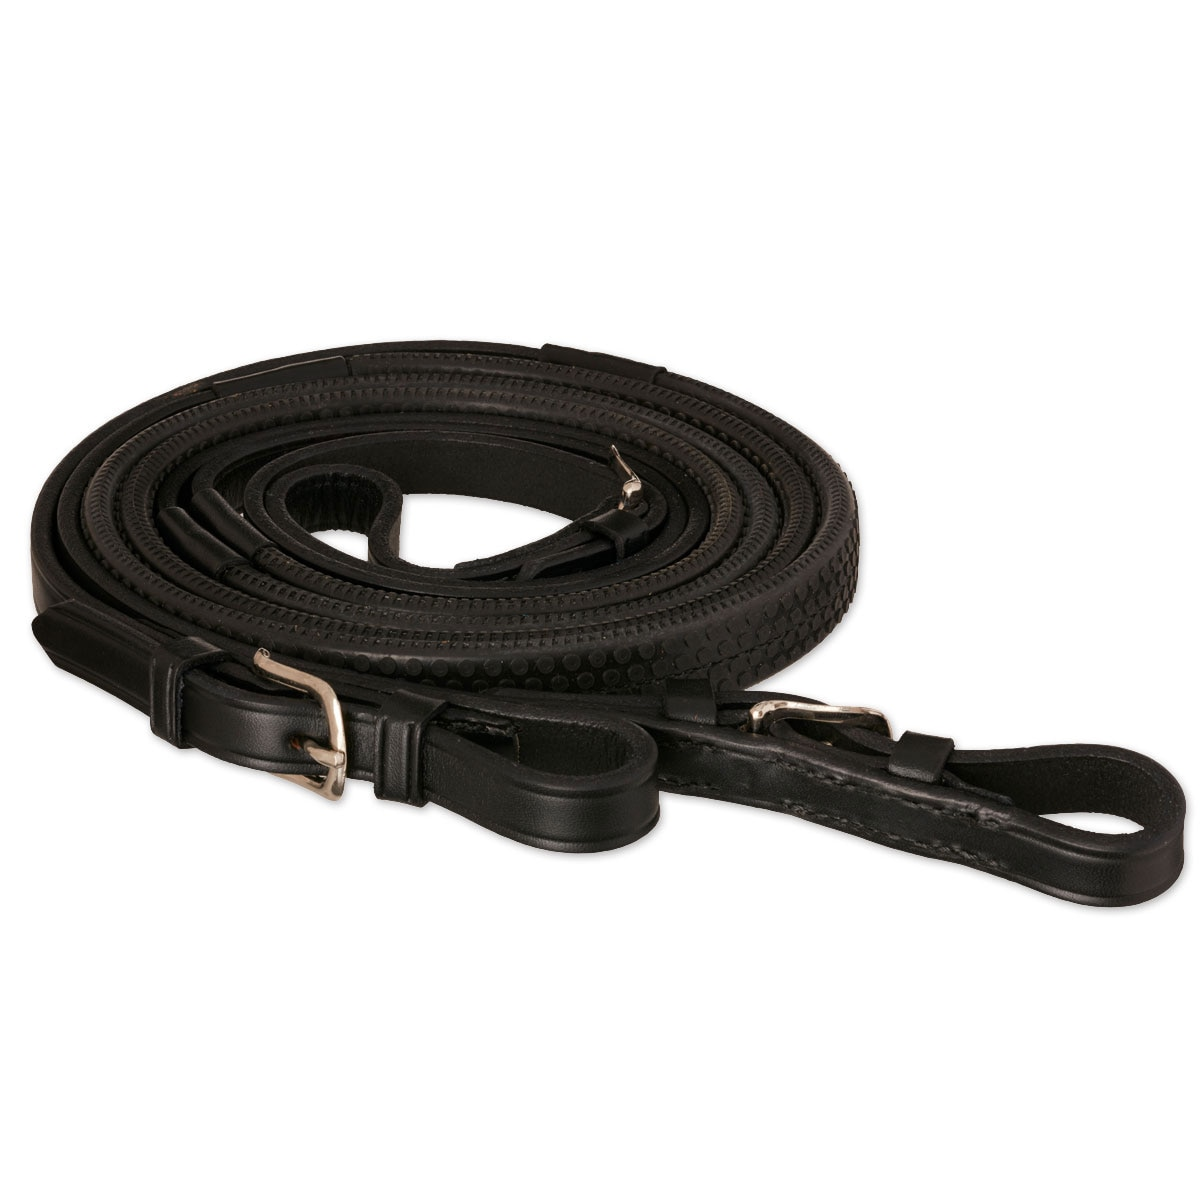 Tory Leather Rubber Grip Competition Reins